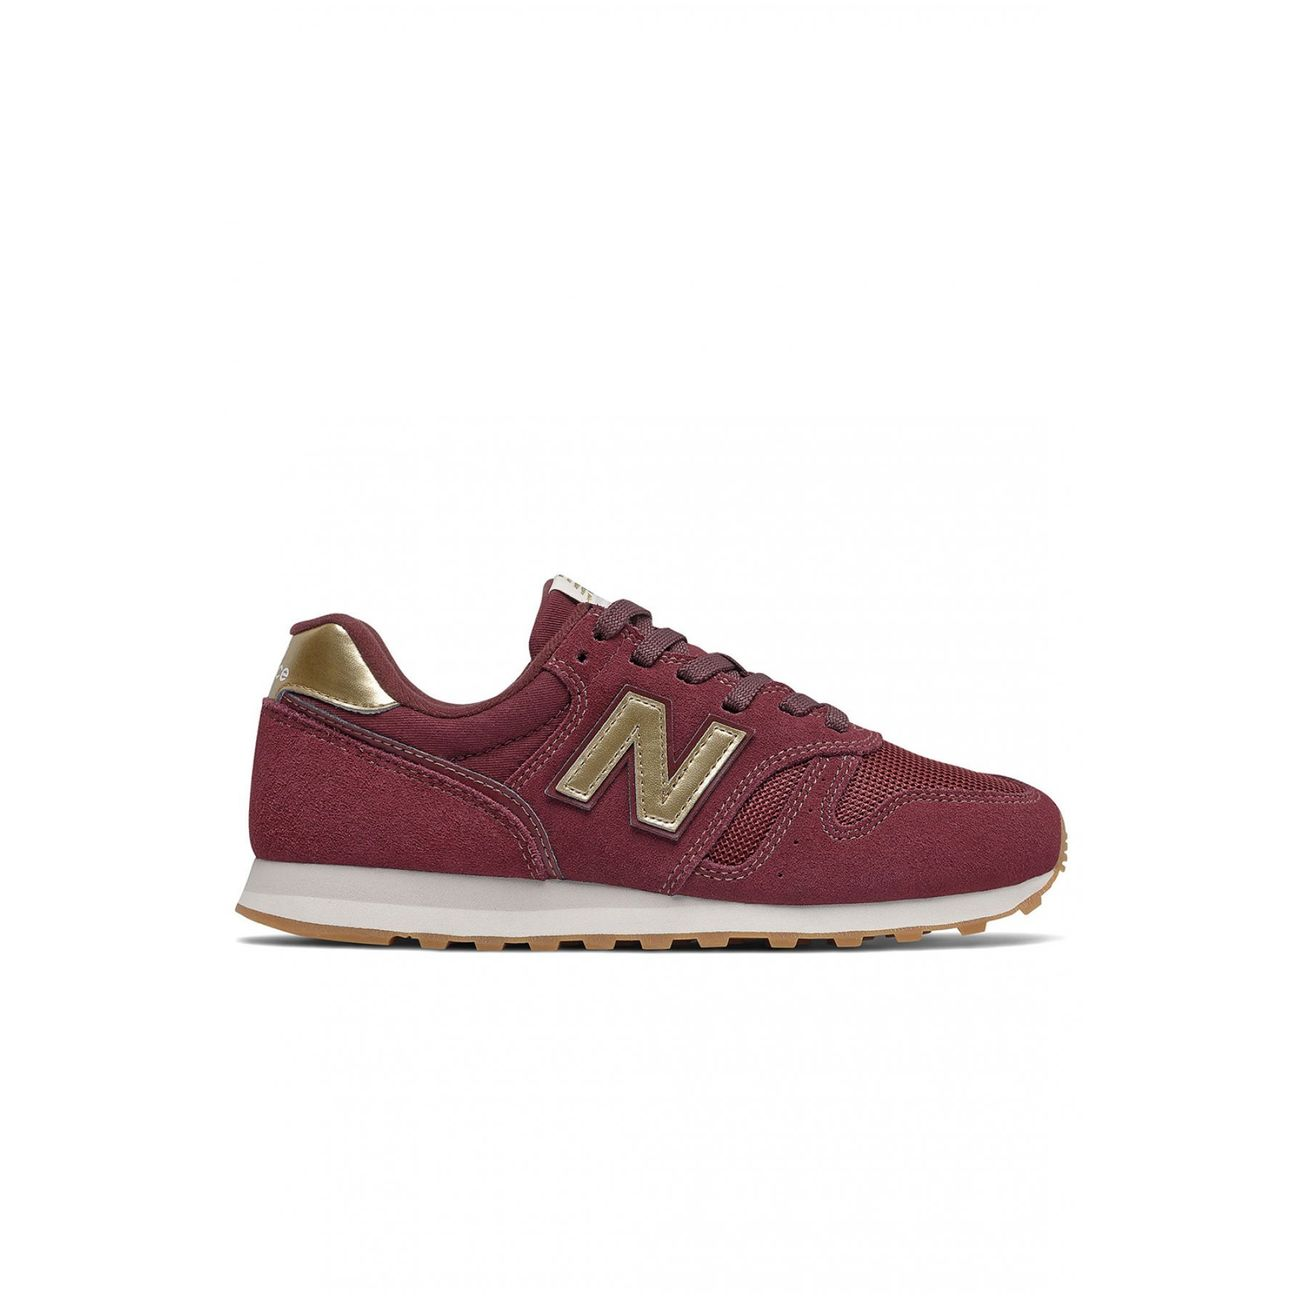 Mode- Lifestyle femme NEW BALANCE Sneakers bimatières lifestyle 373  -  New balance - Femme